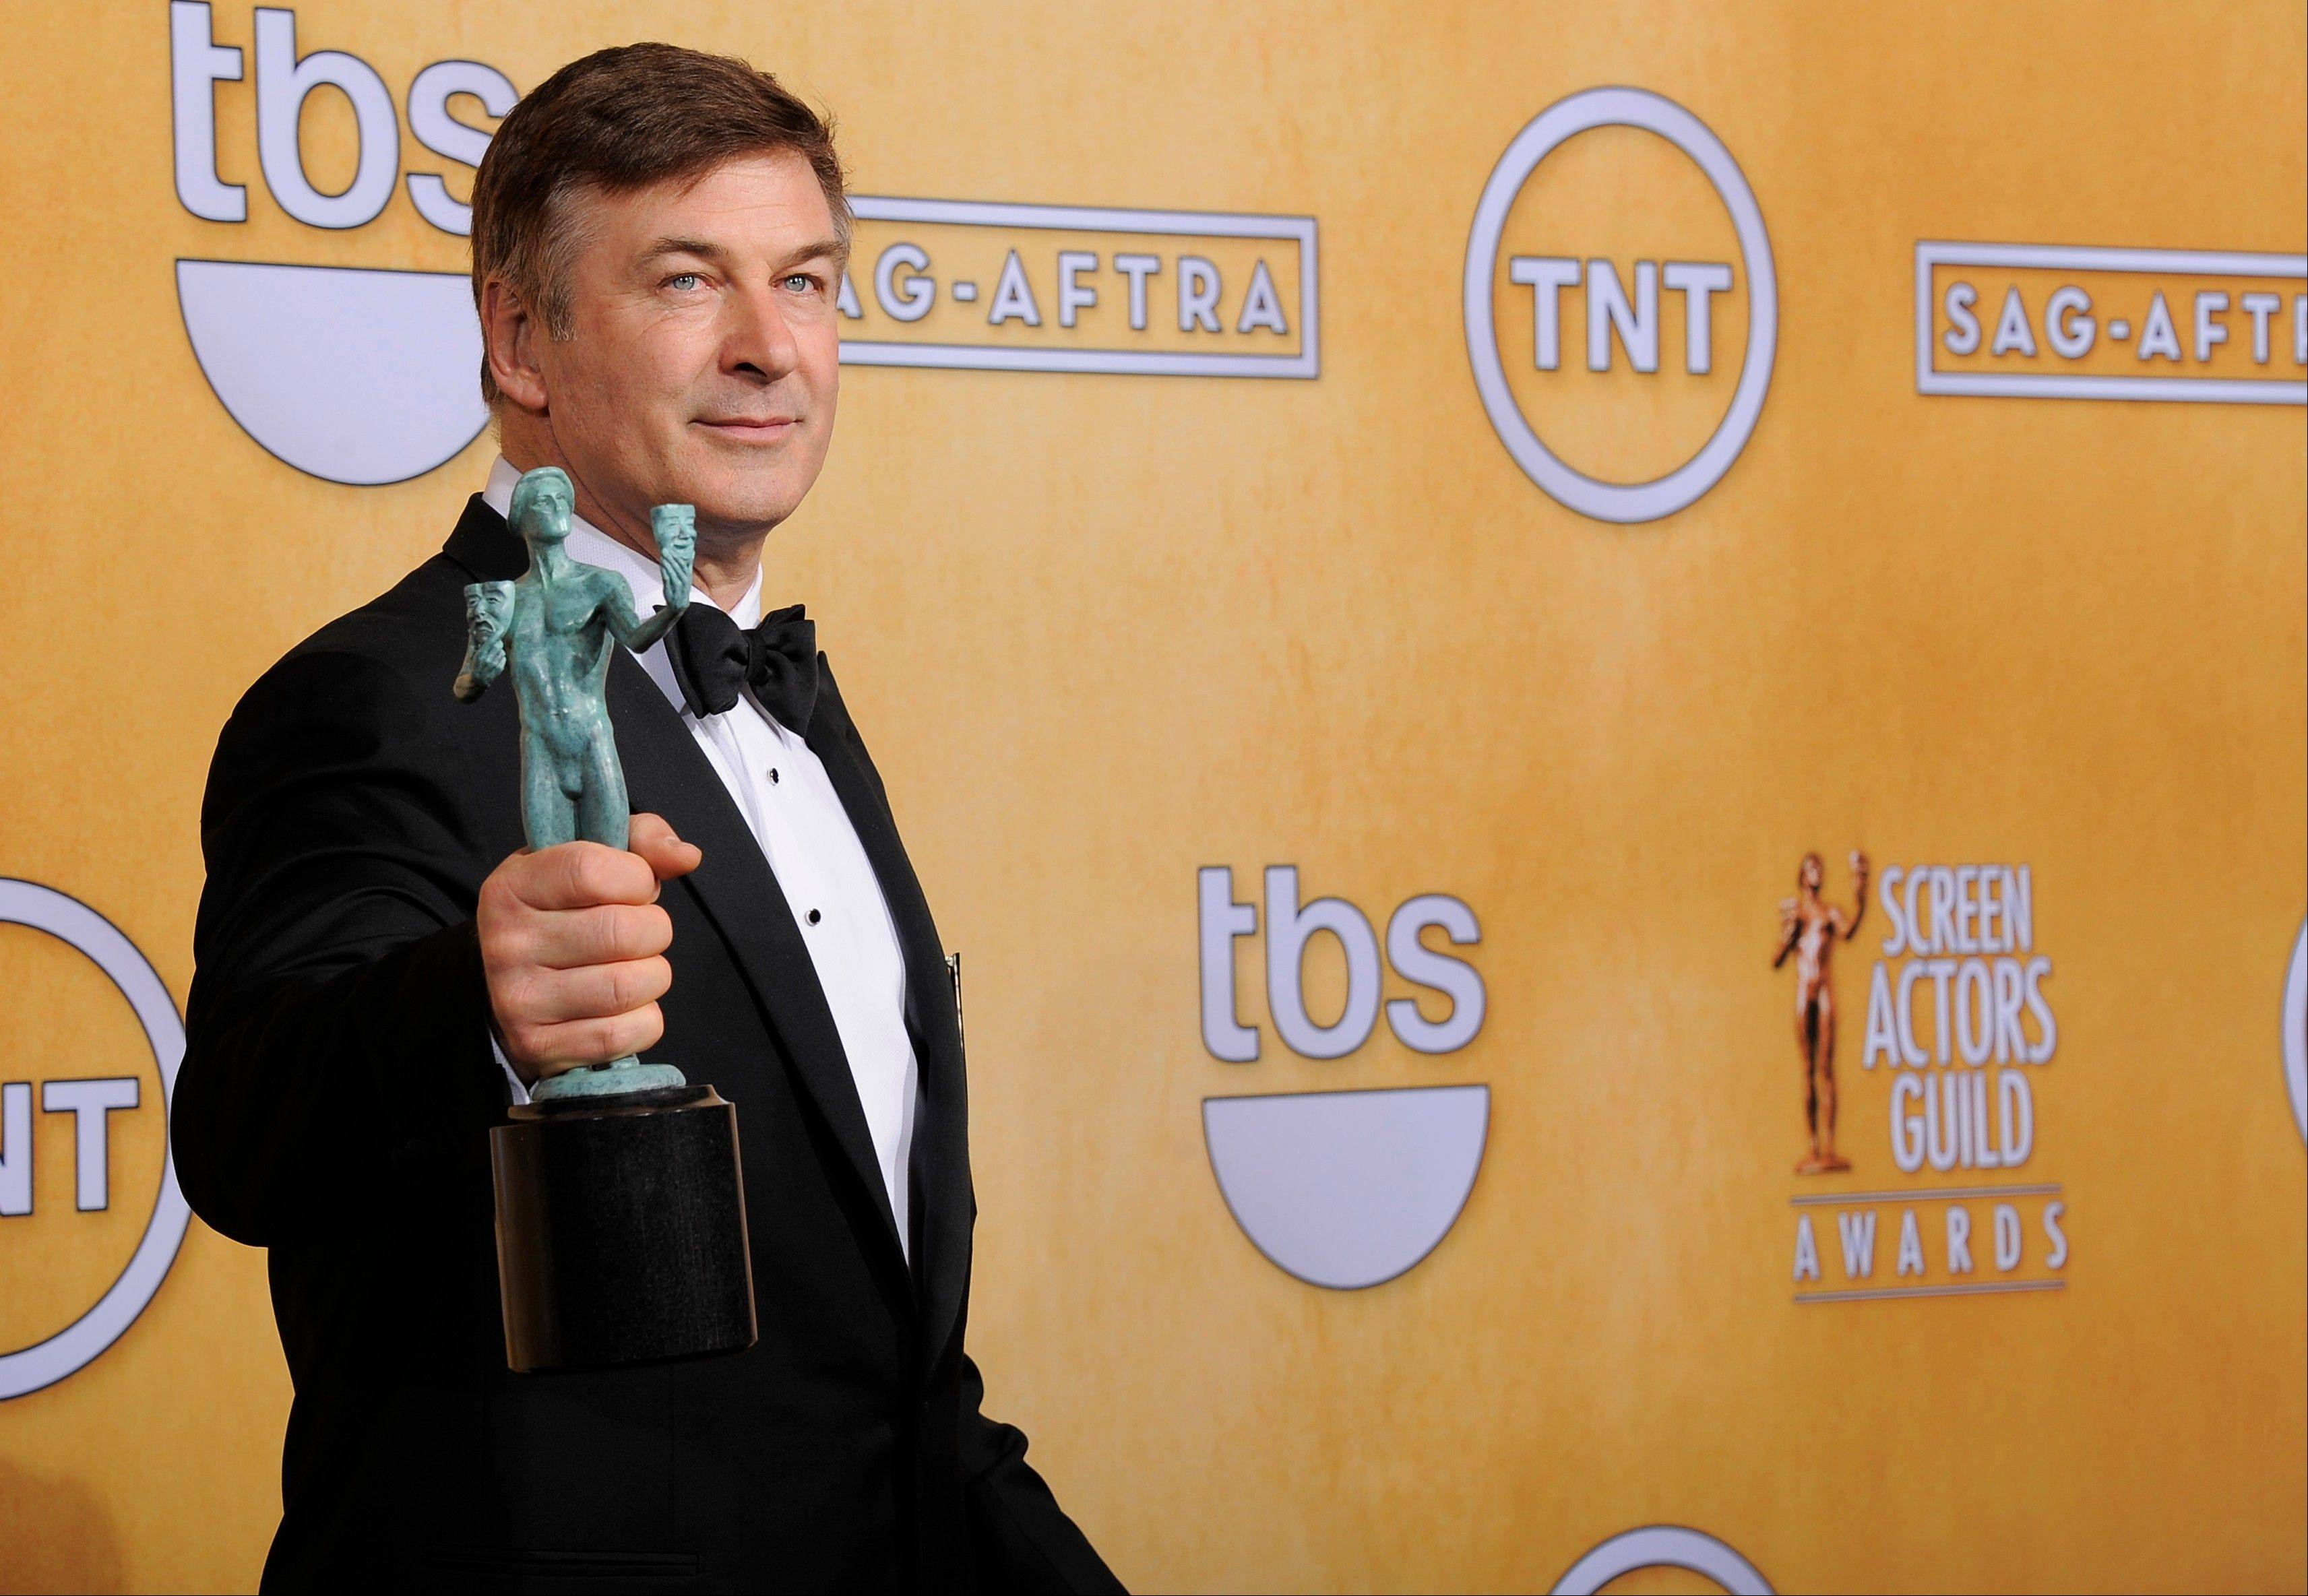 Actor Alec Baldwin poses backstage with the award for best male actor in a comedy series at the 19th Annual Screen Actors Guild Awards at the Shrine Auditorium in Los Angeles on Sunday Jan. 27, 2013.